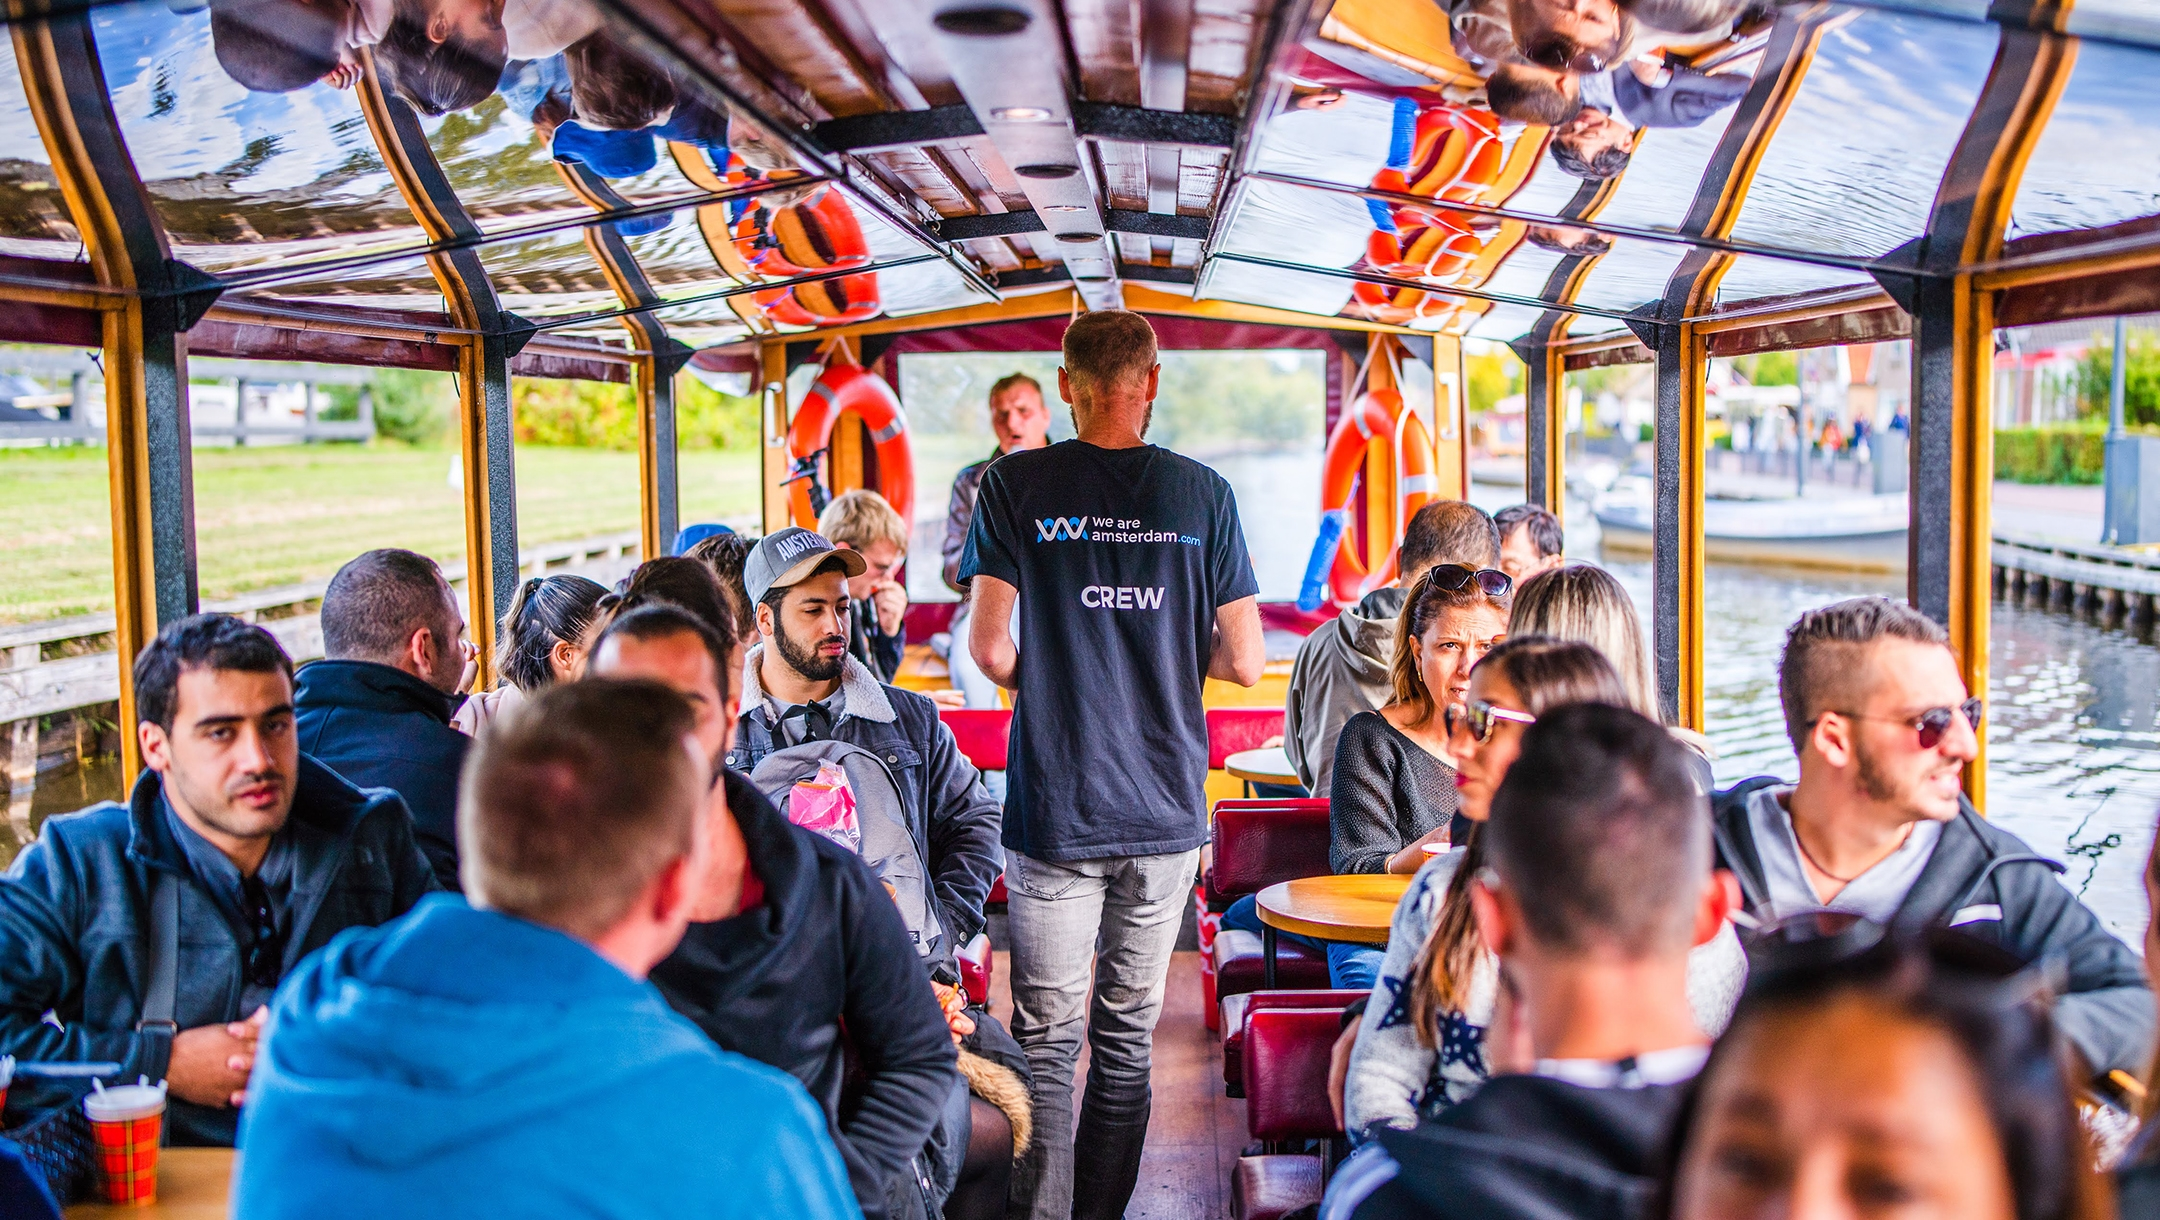 Tourists participate in a We Are Amsterdam canal tour operator in the center of Amsterdam, the Netherlands in 2019. (Courtesy of We Are Amsterdam)